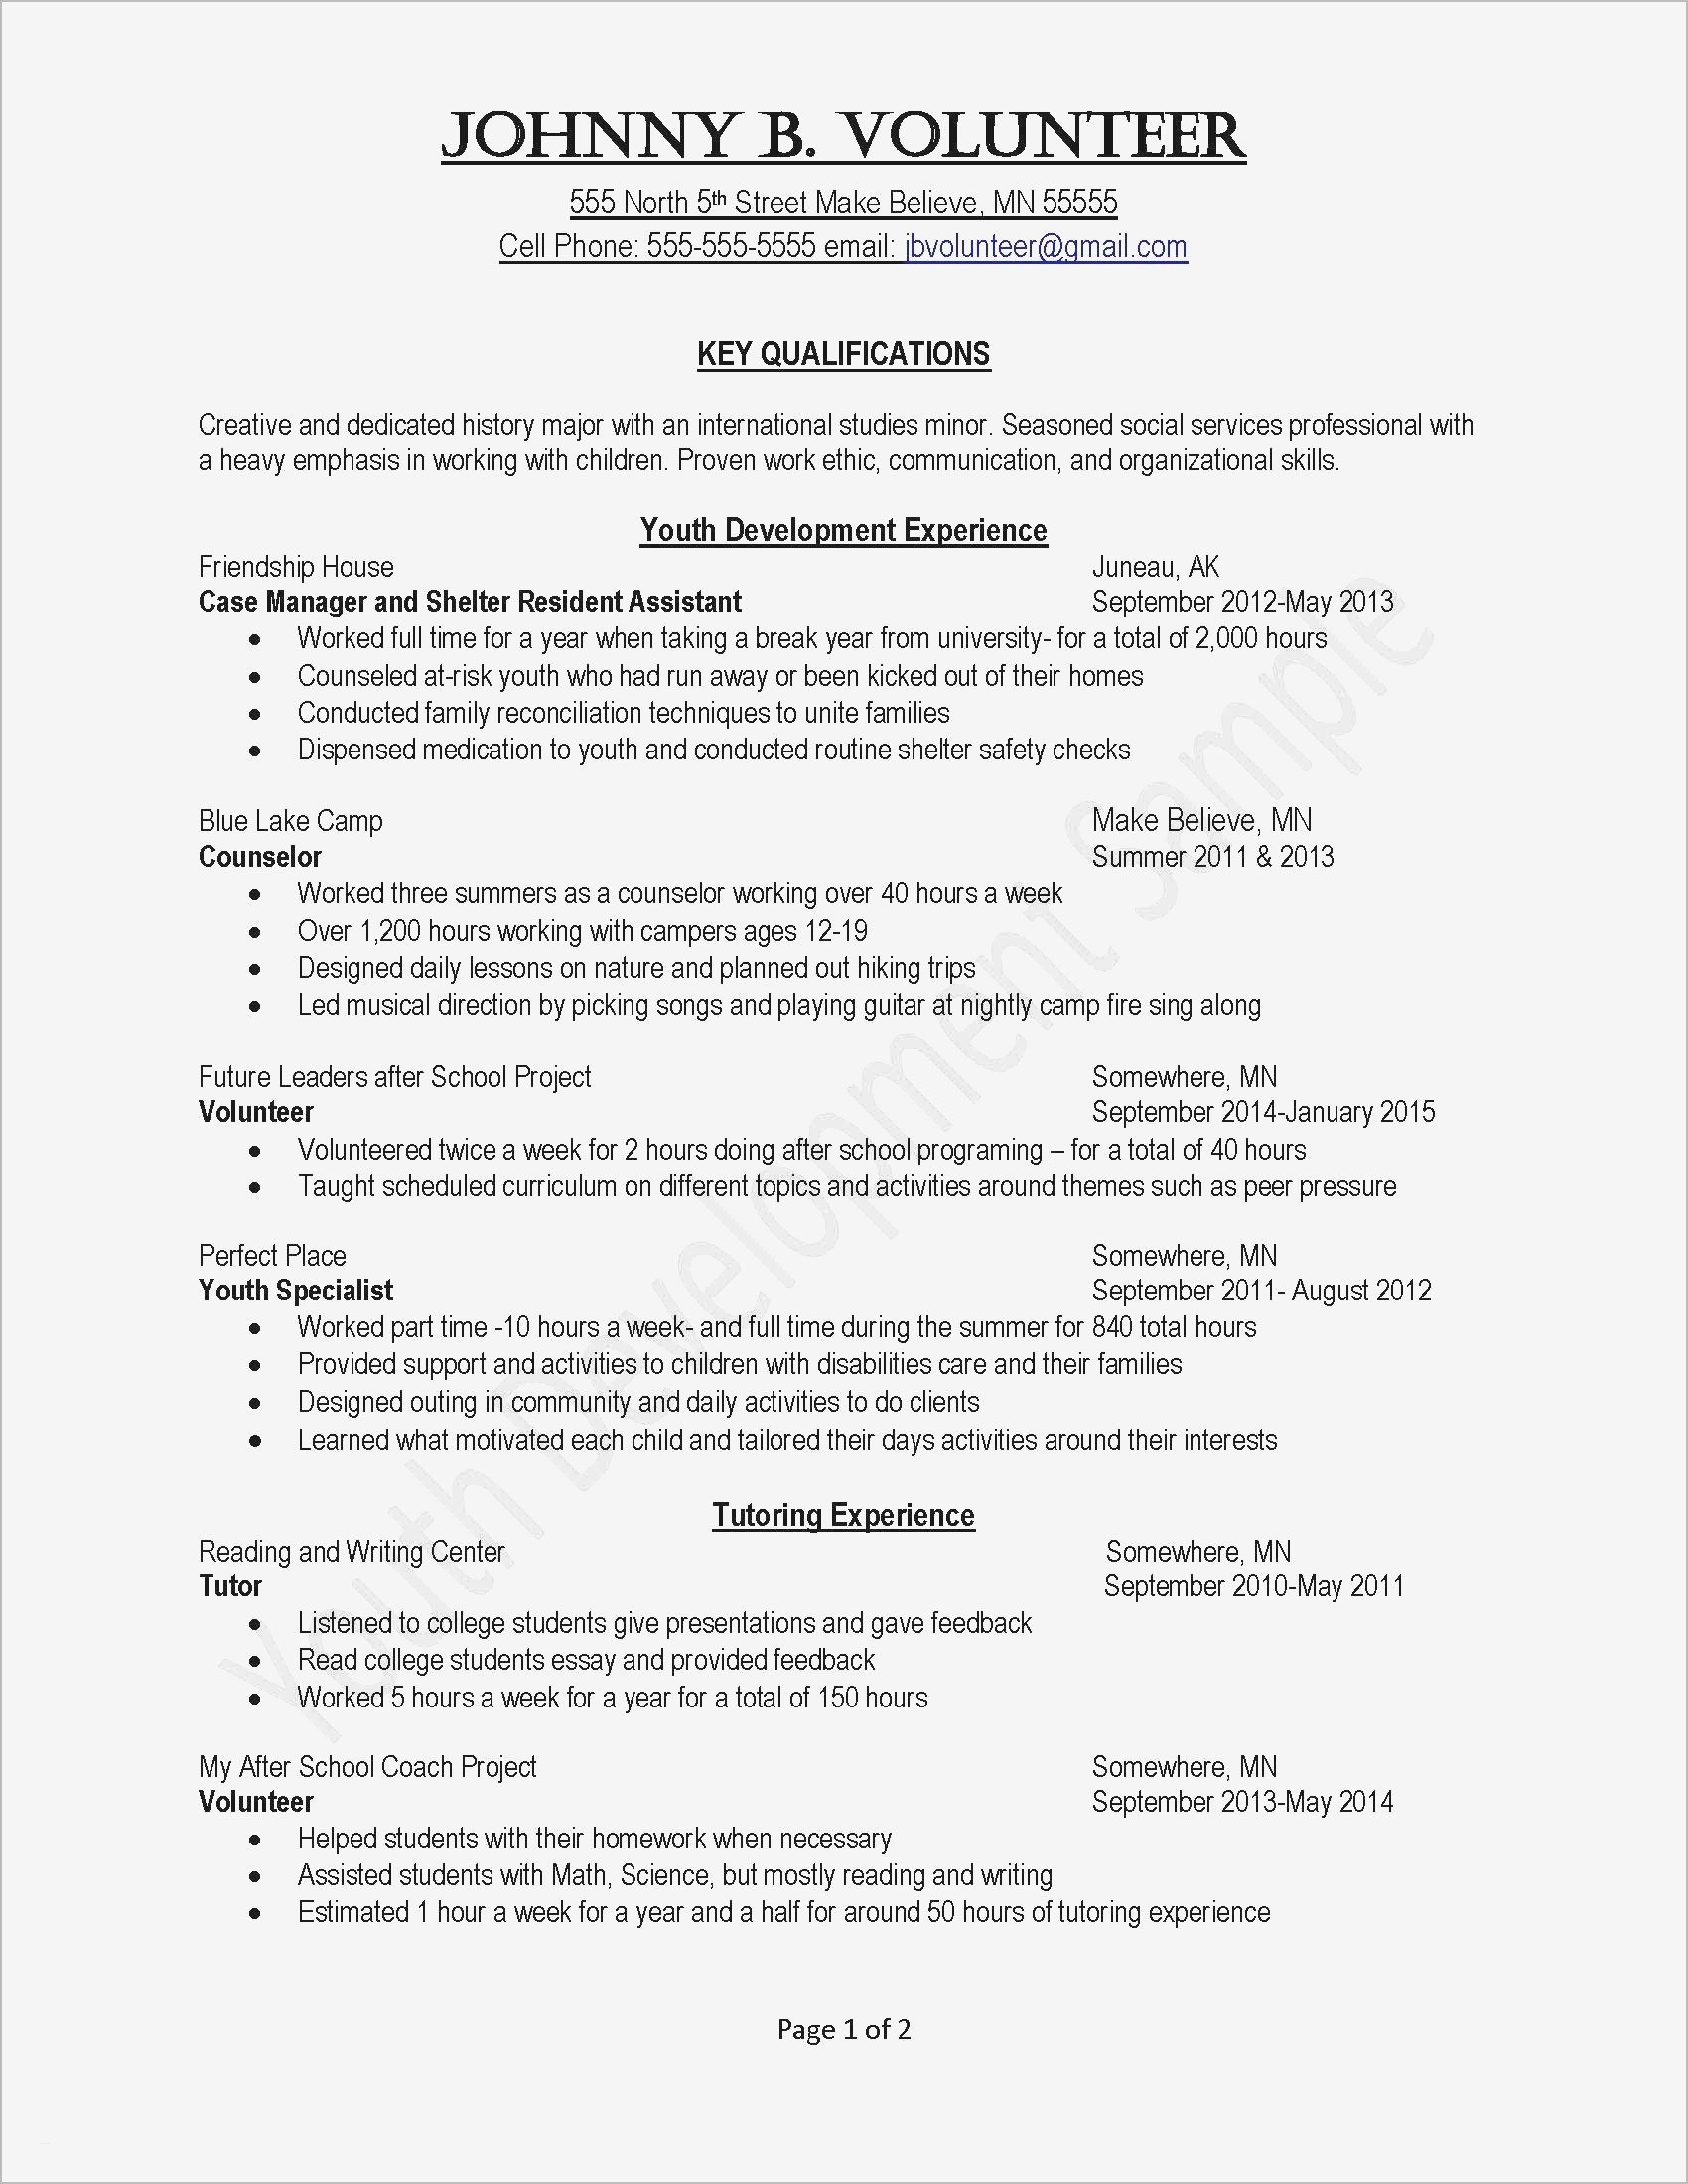 Cover Letter Template for Non Profit Jobs - Writing A Cover Letter for A Resume Elegant Job Fer Letter Template